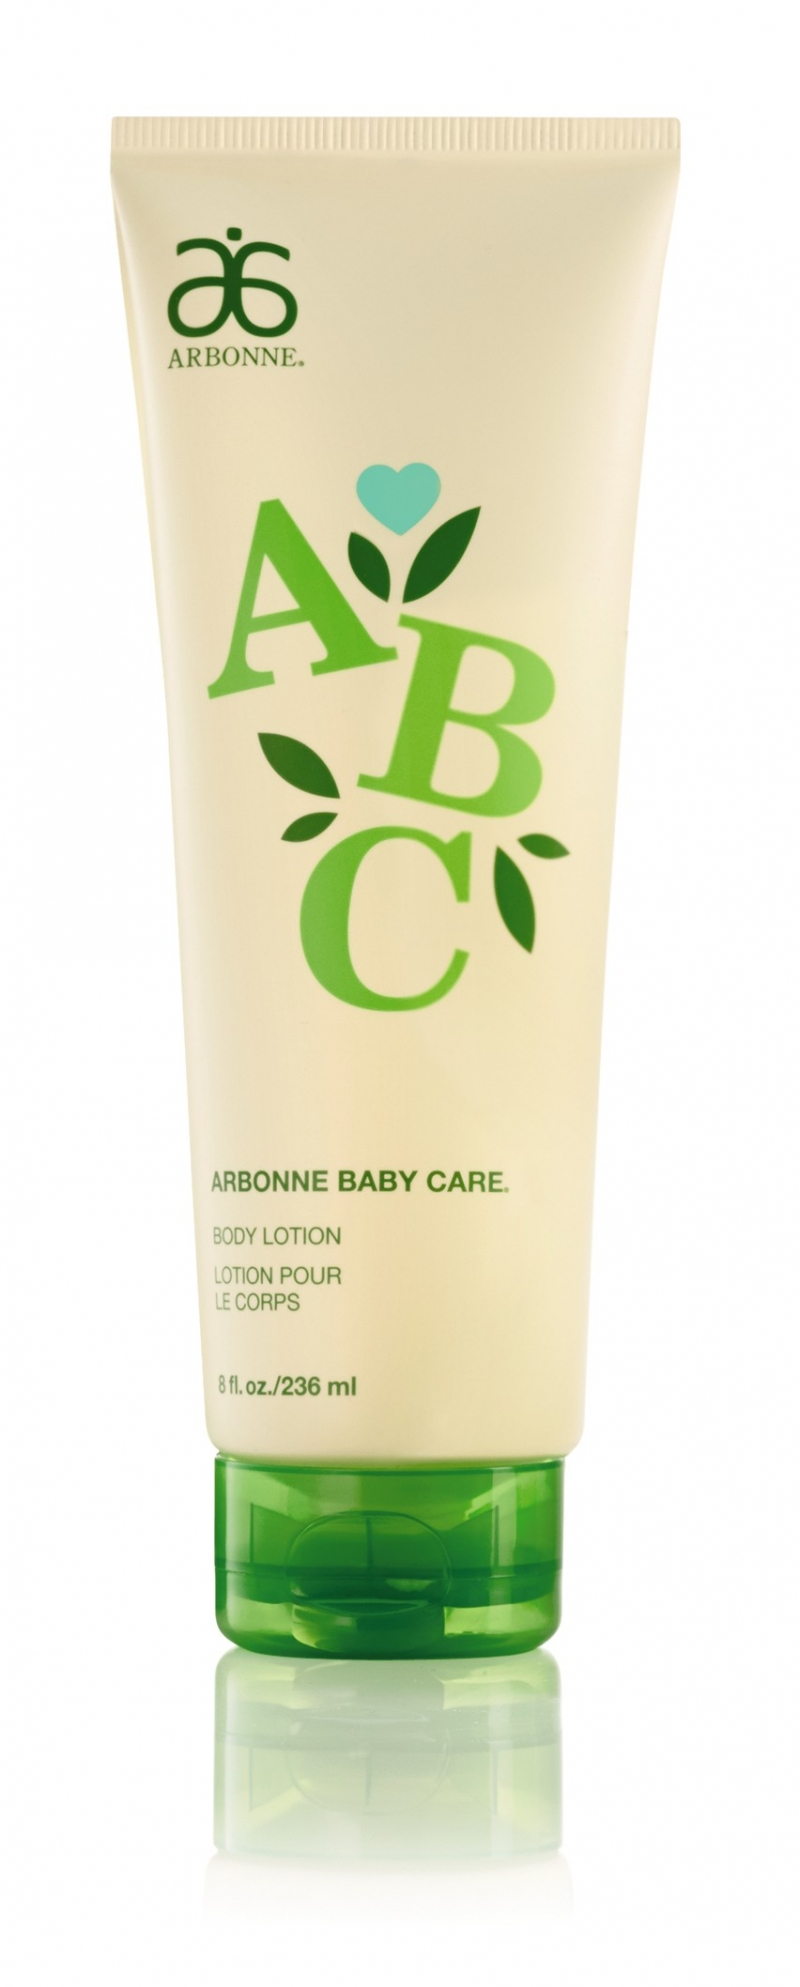 ABC Baby Care Body Lotion